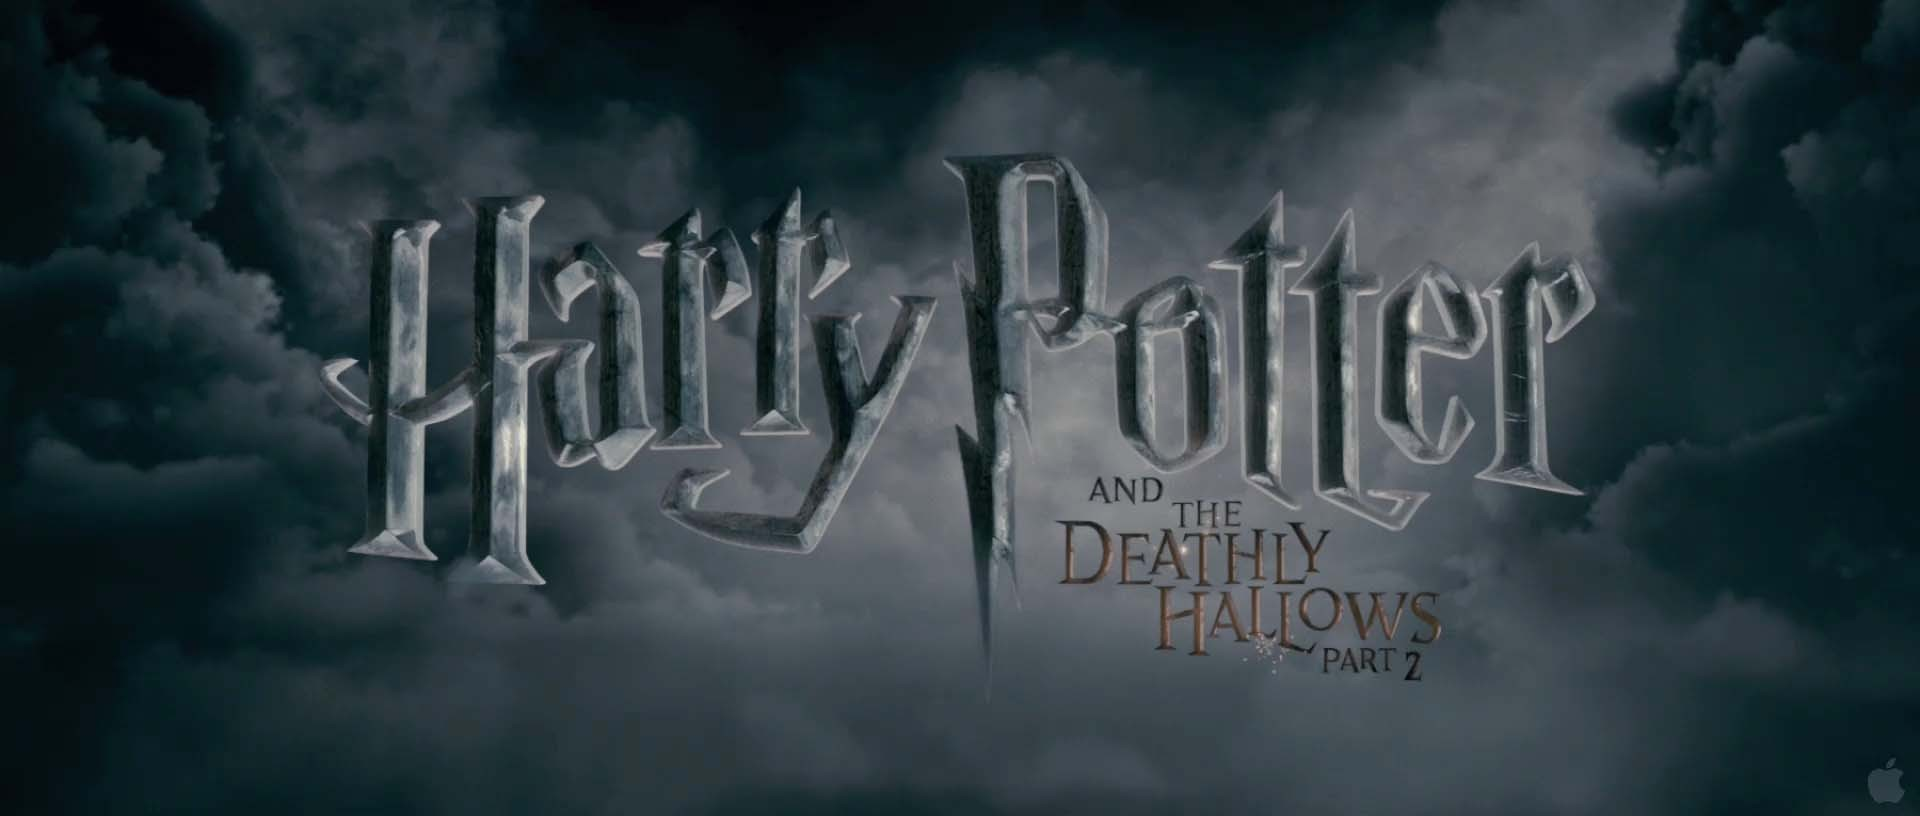 Harry Potter and the Deathly Hallows (Part 2) - Official ...